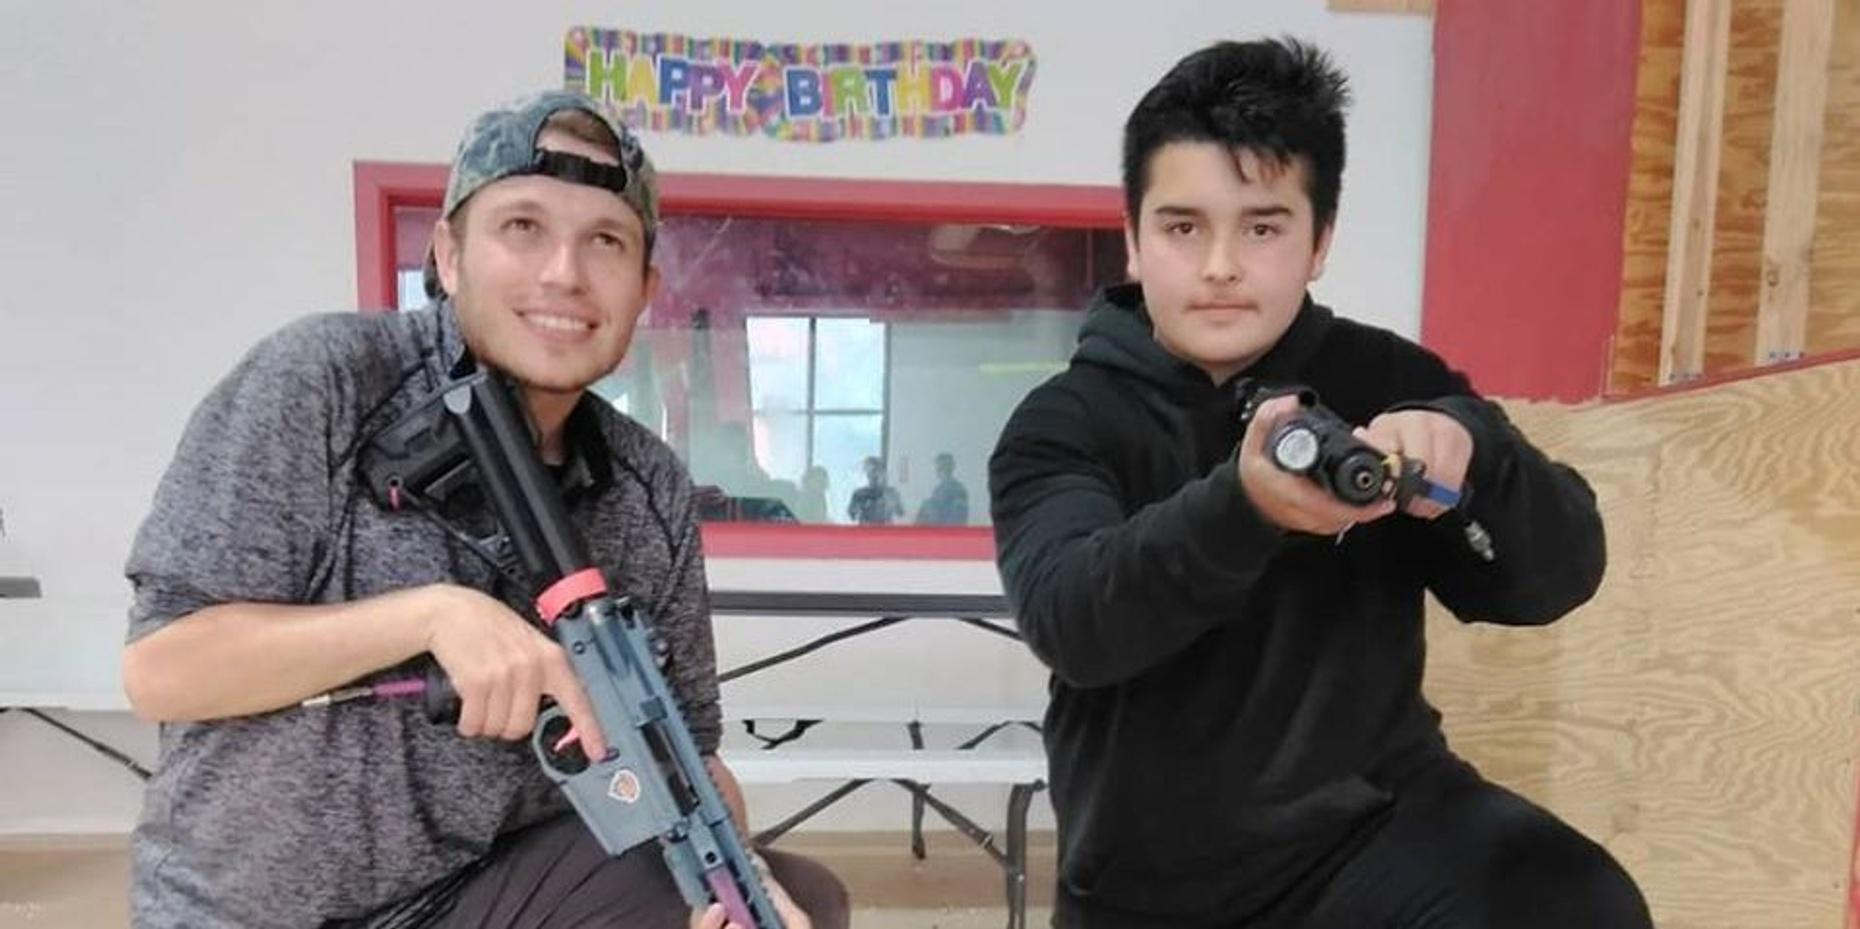 Airsoft Replica Rifle Shootout Birthday Package in Houston